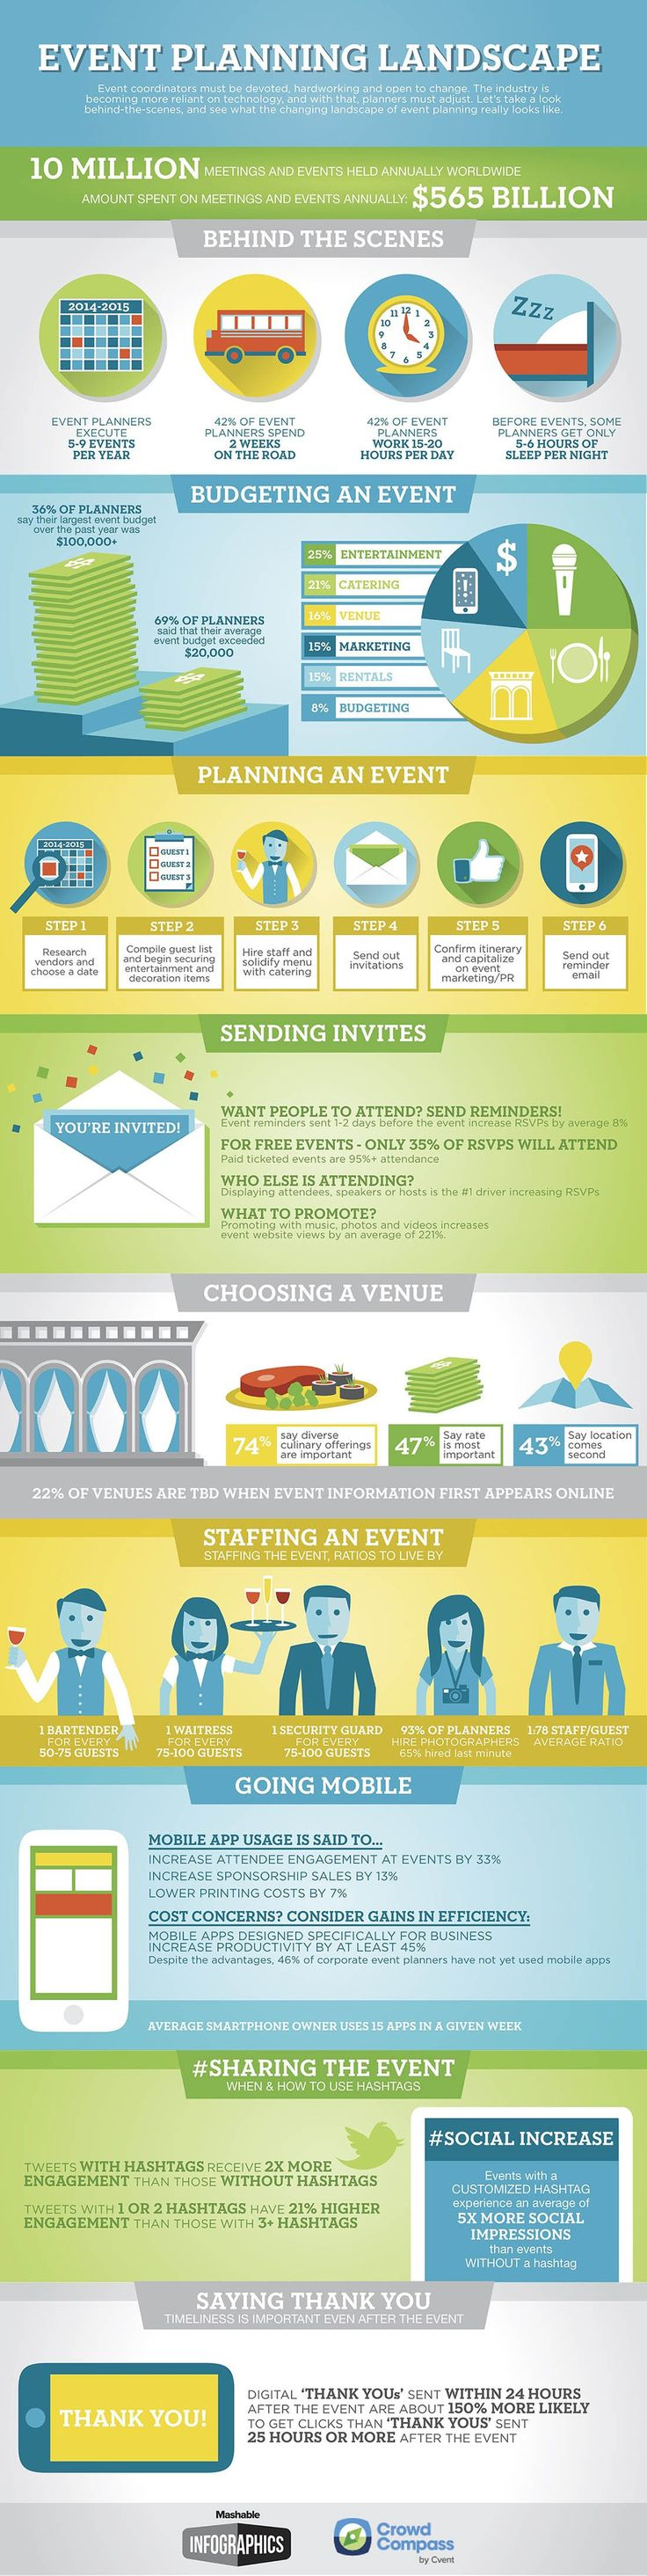 An infographic detailing a day in the life of an event planner.